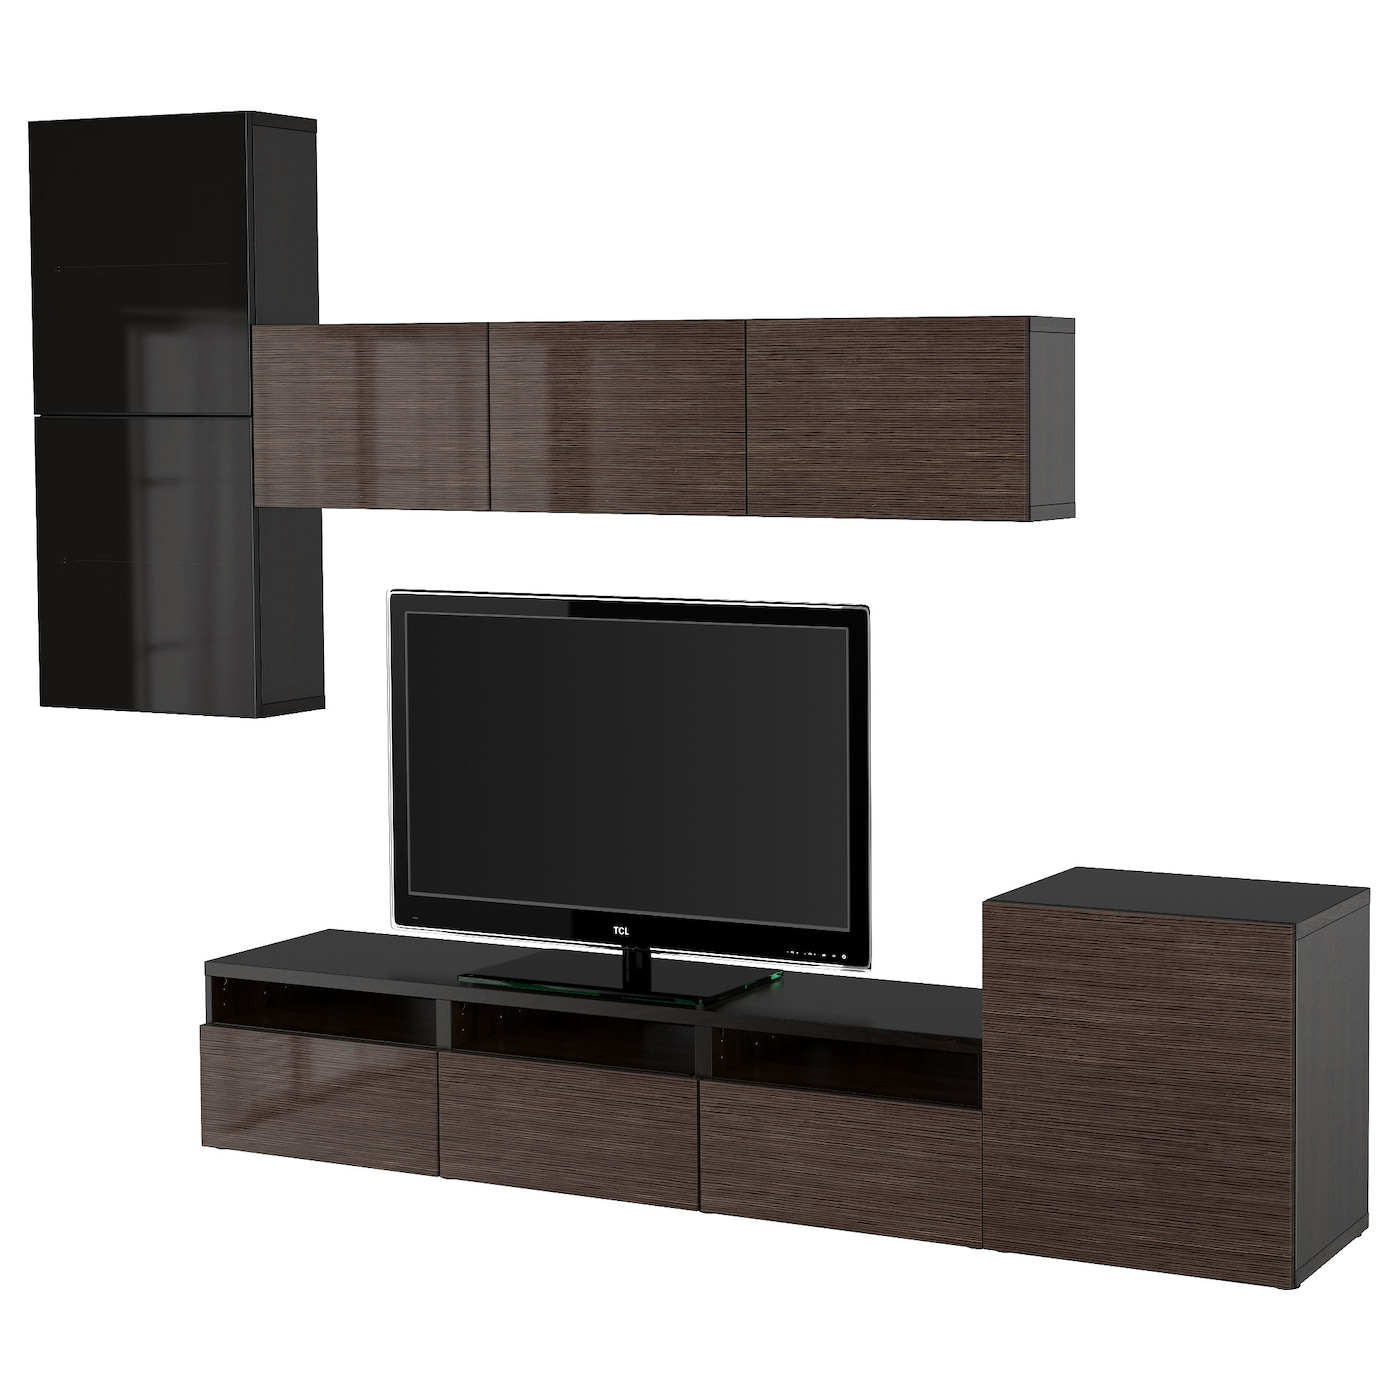 BEST… TV storage bination glass doors Black brown selsviken high